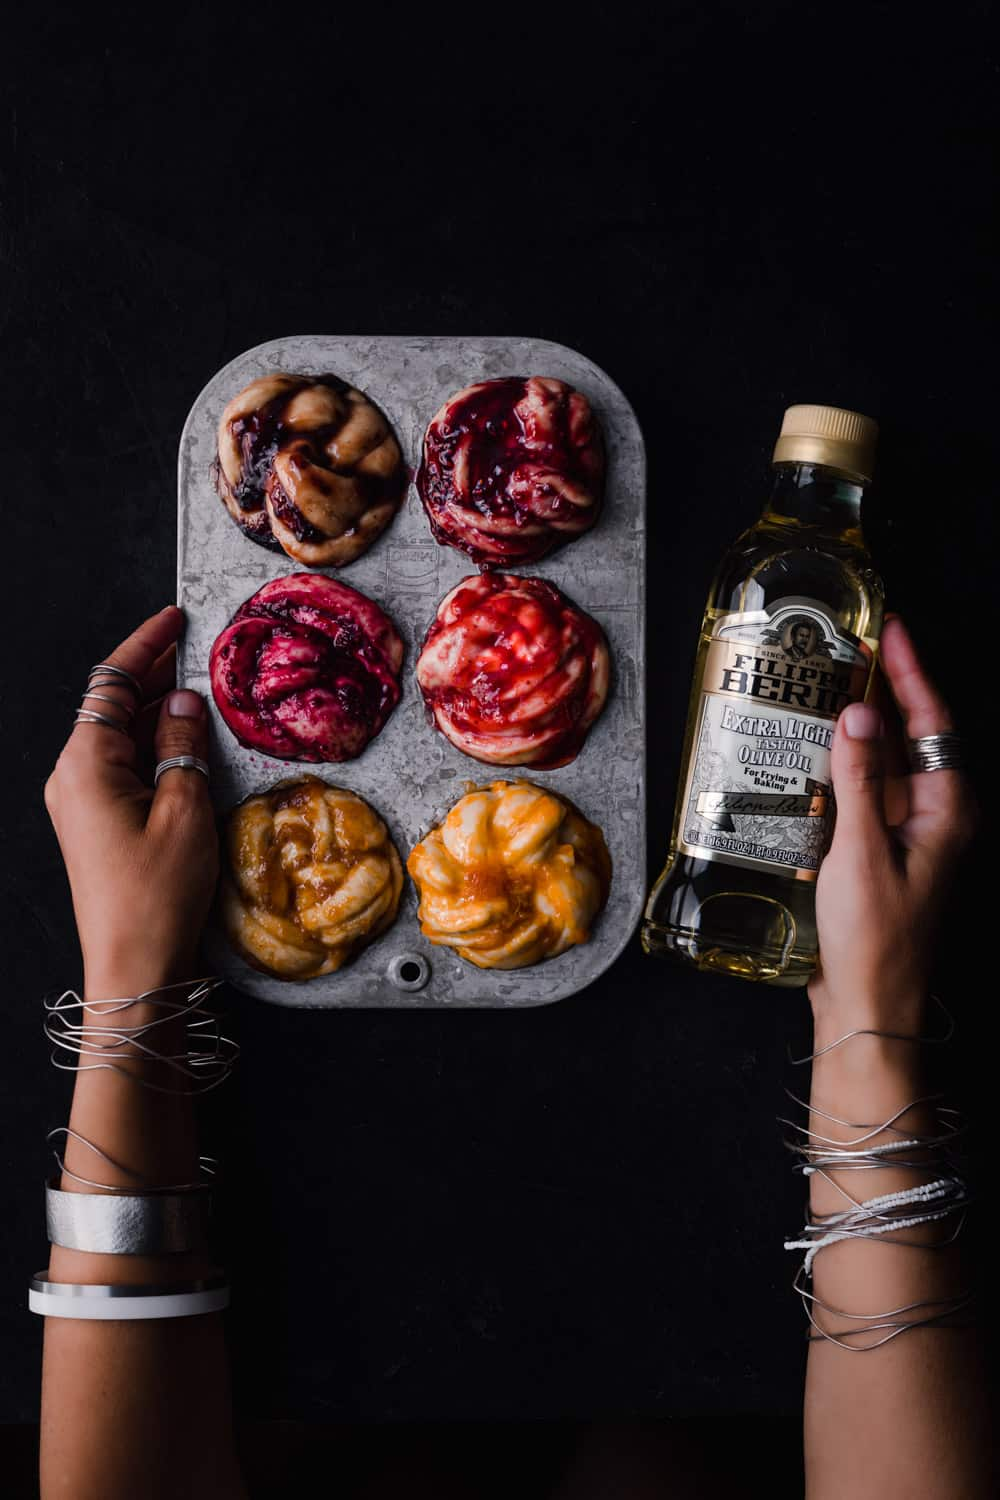 Daniela Gerson holding a bottle of olive oil in one hand and rainbow challah babka buns in a muffin tin in the other on a black background; overhead shot.